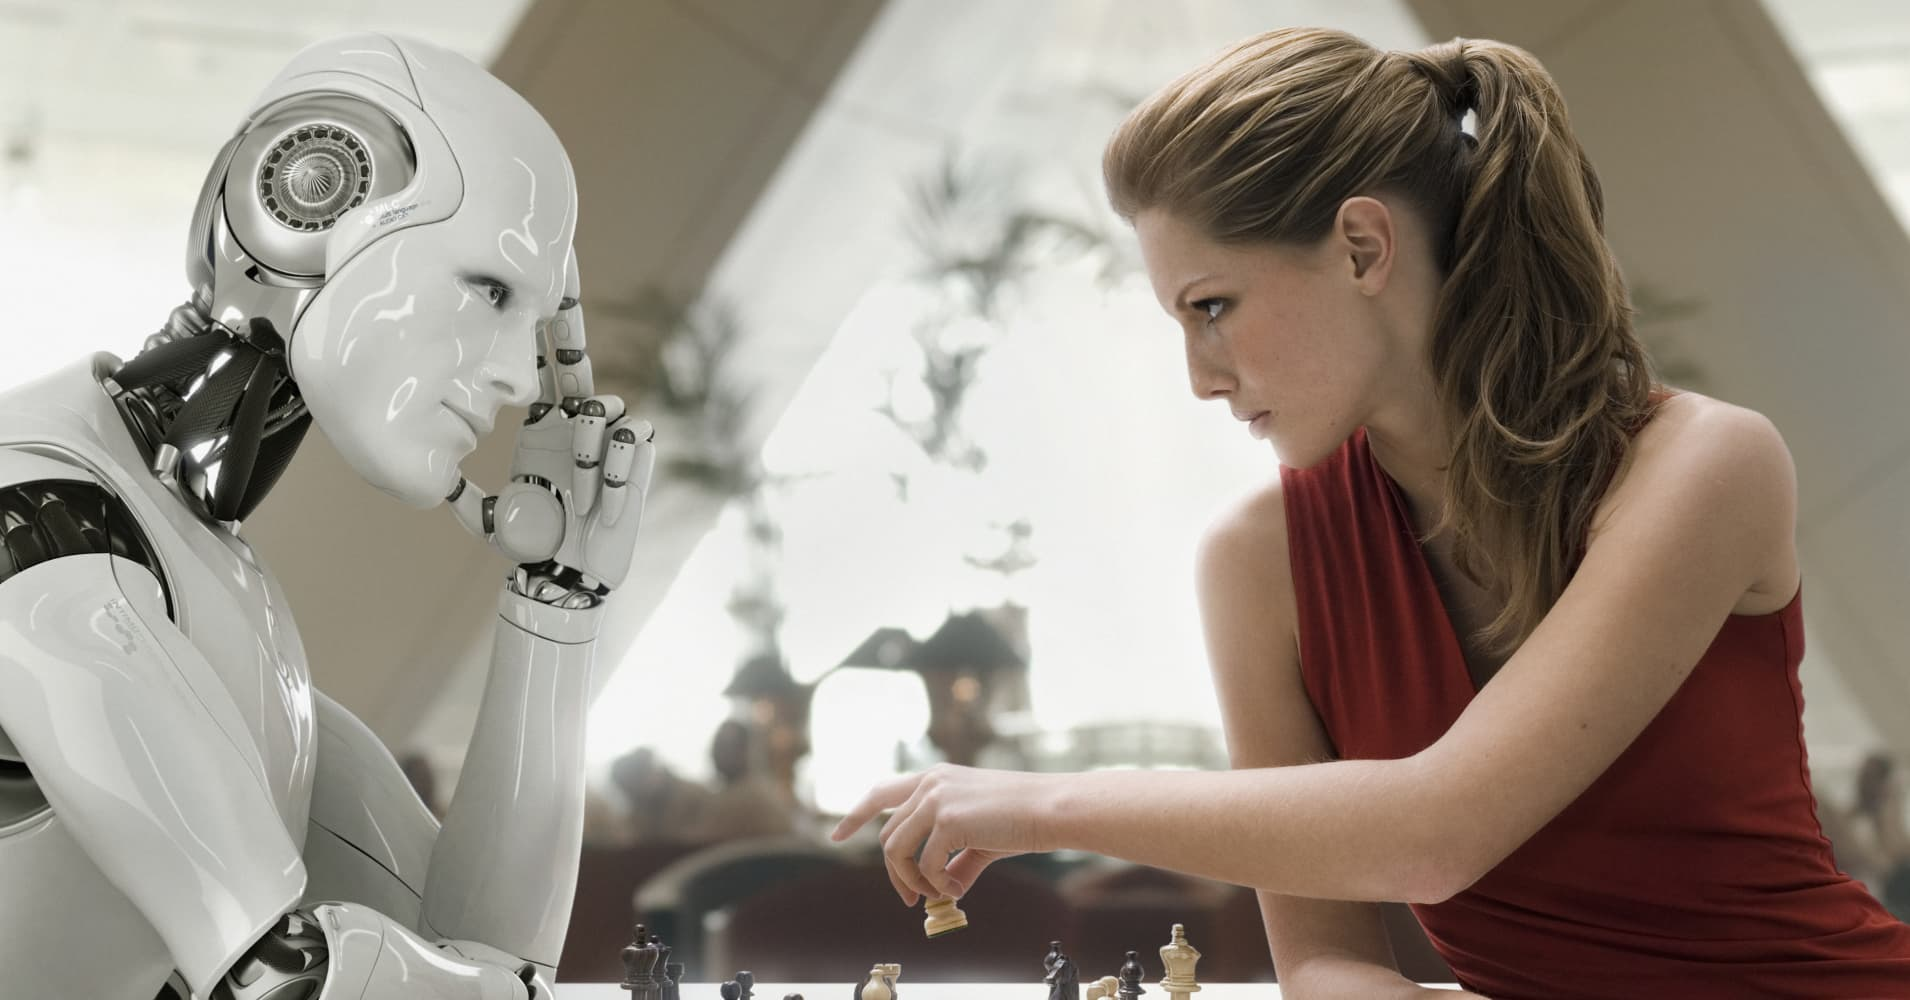 The rise of A.I. could hurt women's careers in a major way